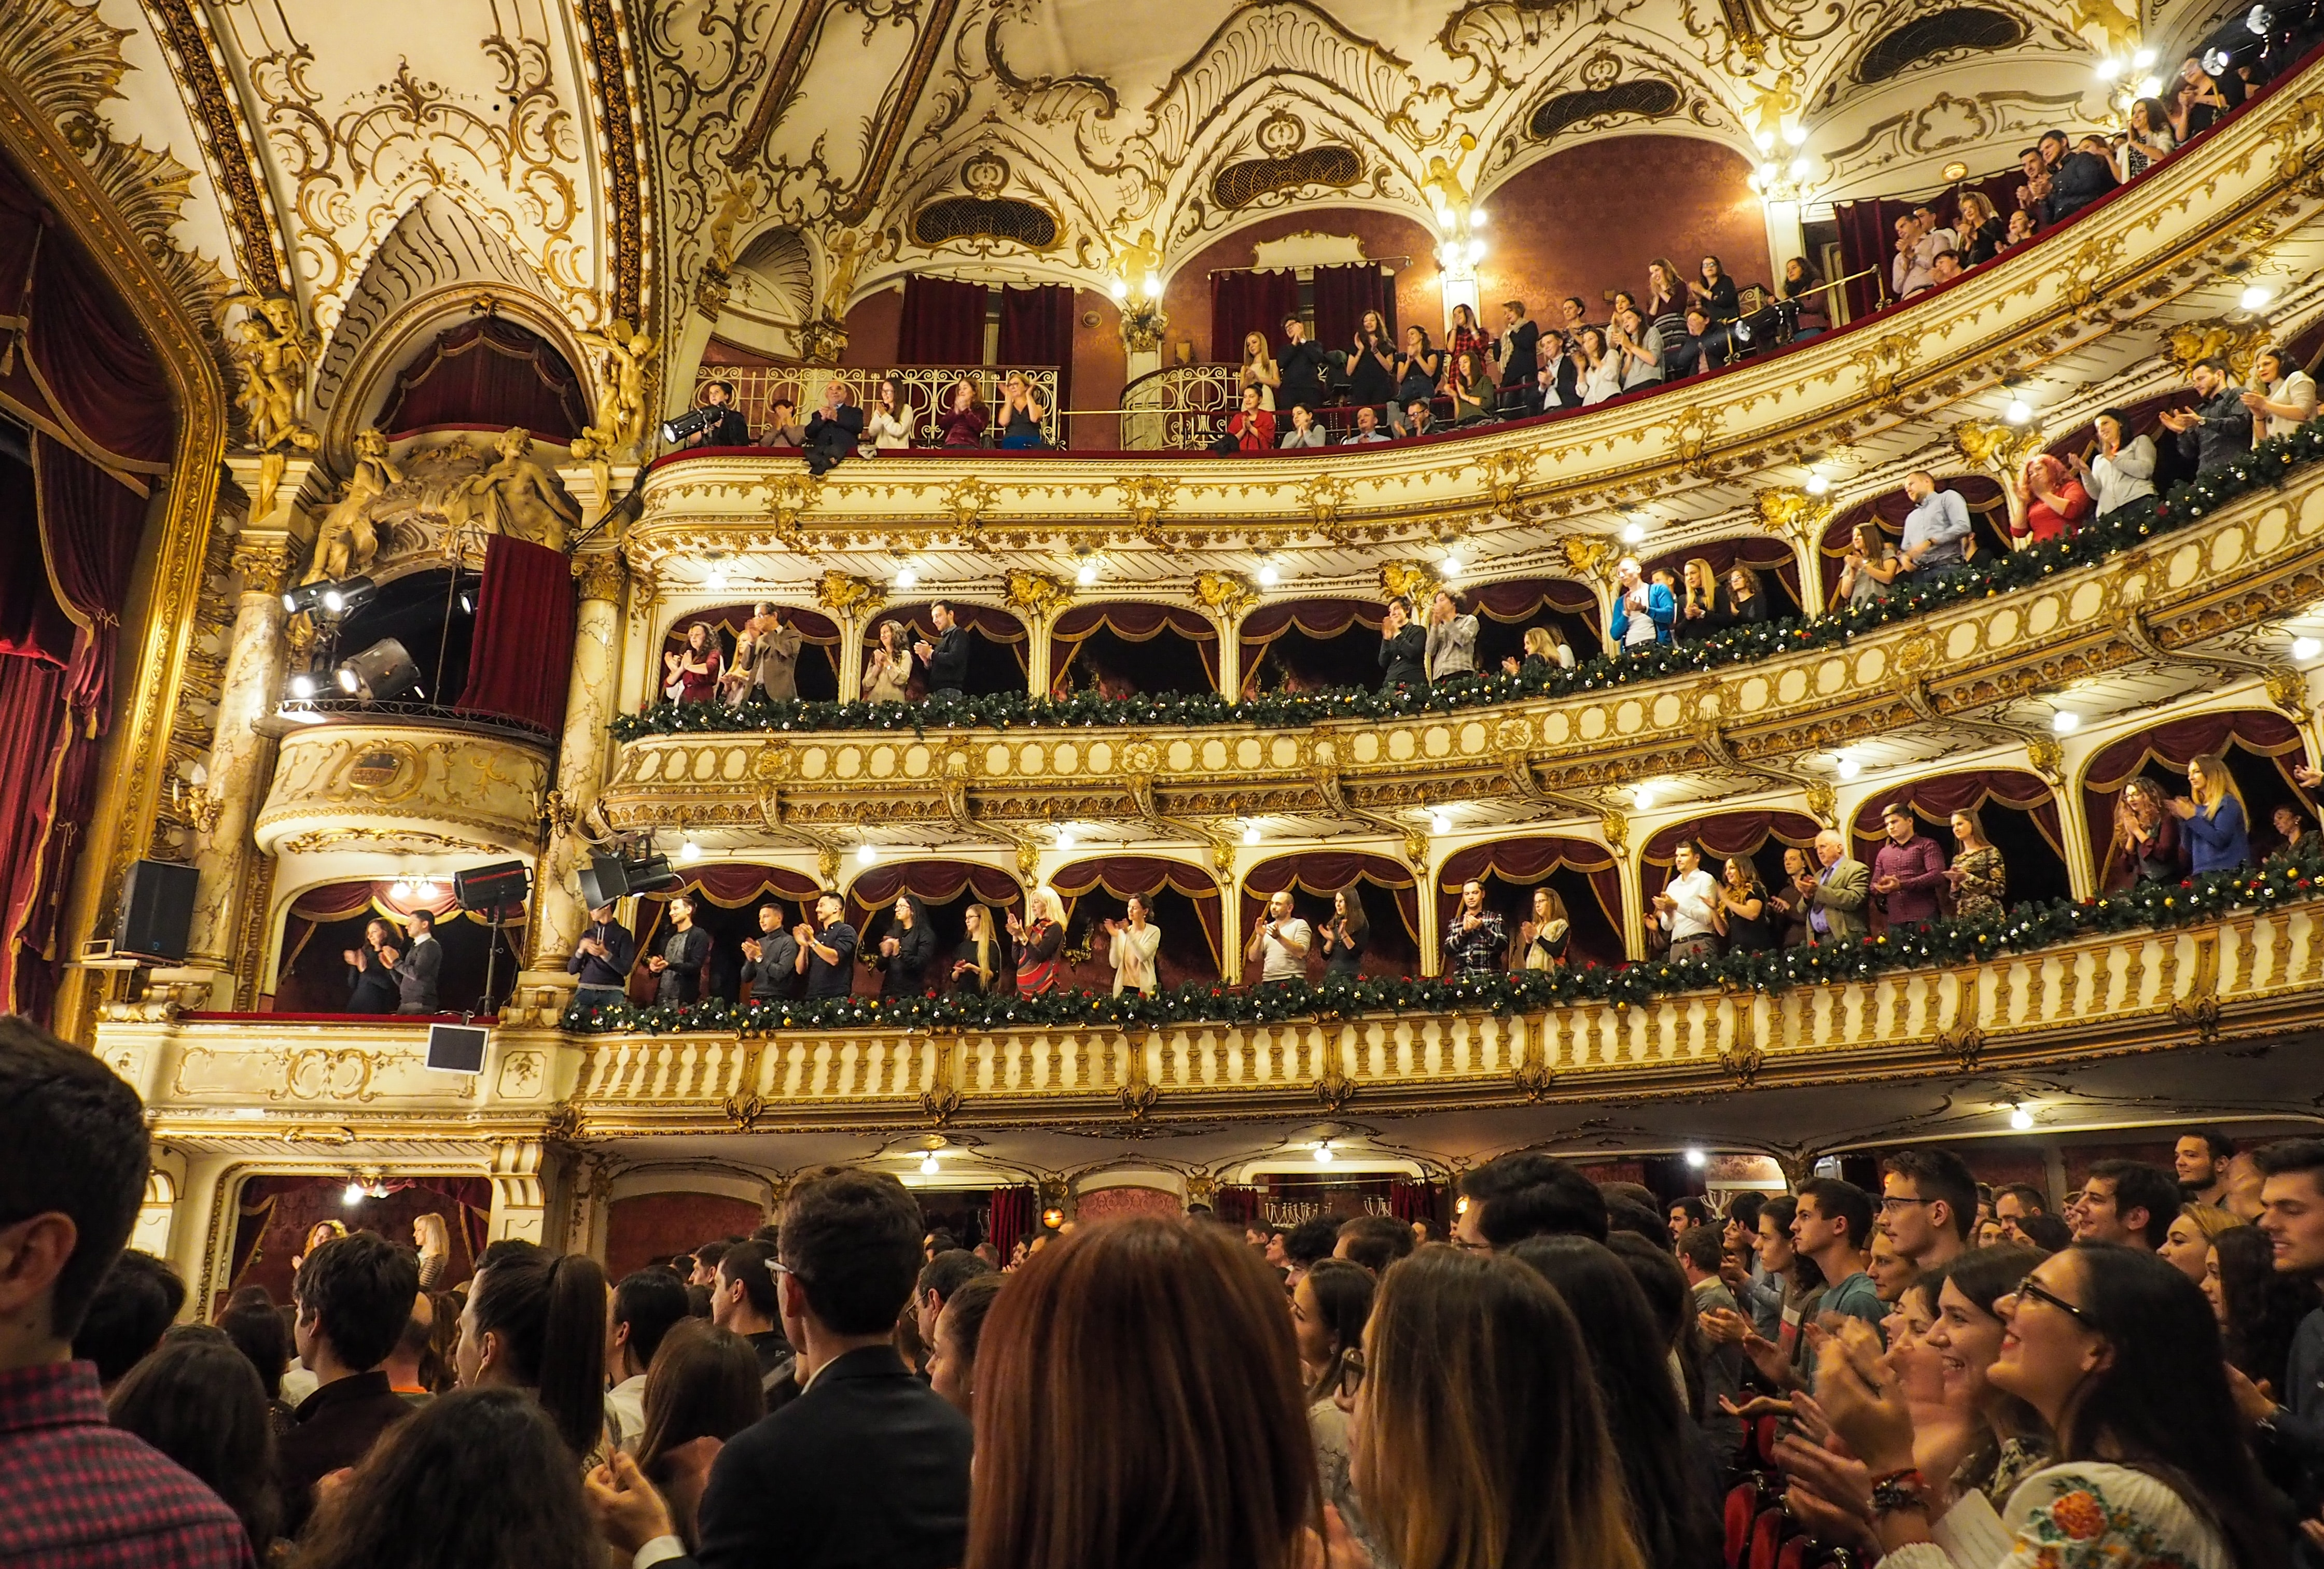 A theatre full of people giving a standing ovation to a performance.